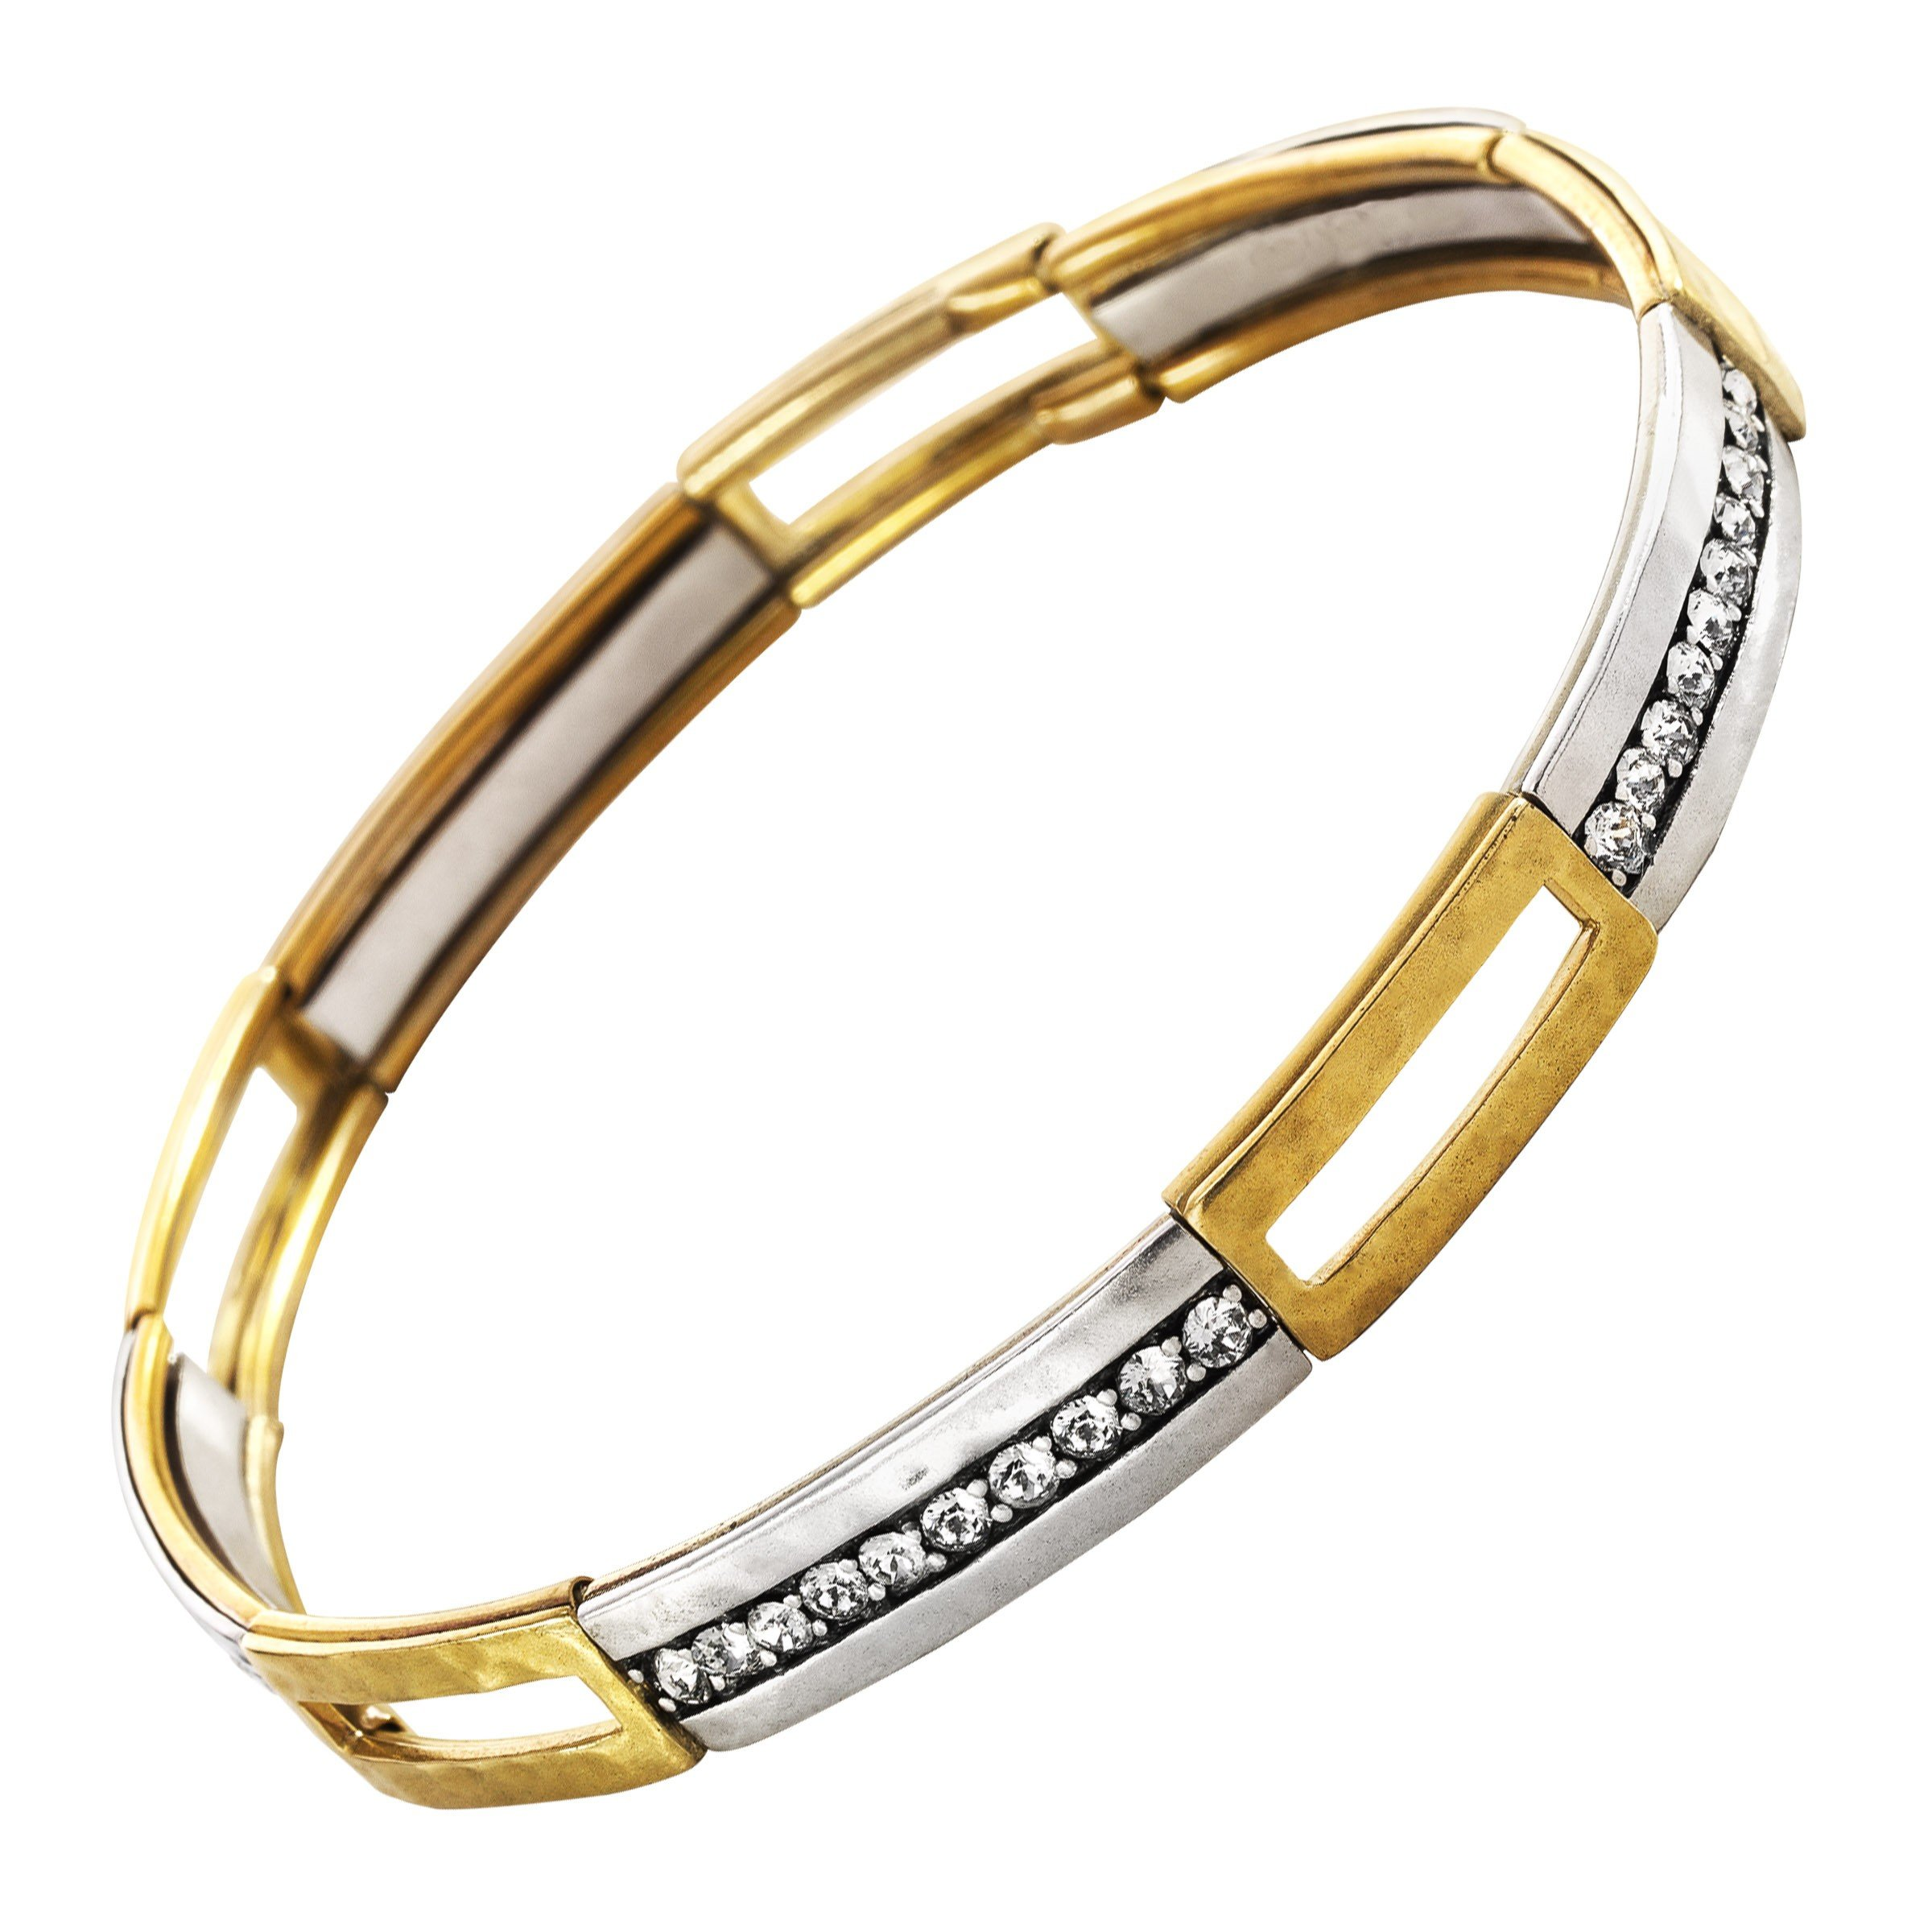 Silpada 'Fusion' Stretch Bracelet with Swarovski Crystals in Brass and Sterling Silver, 7.75''